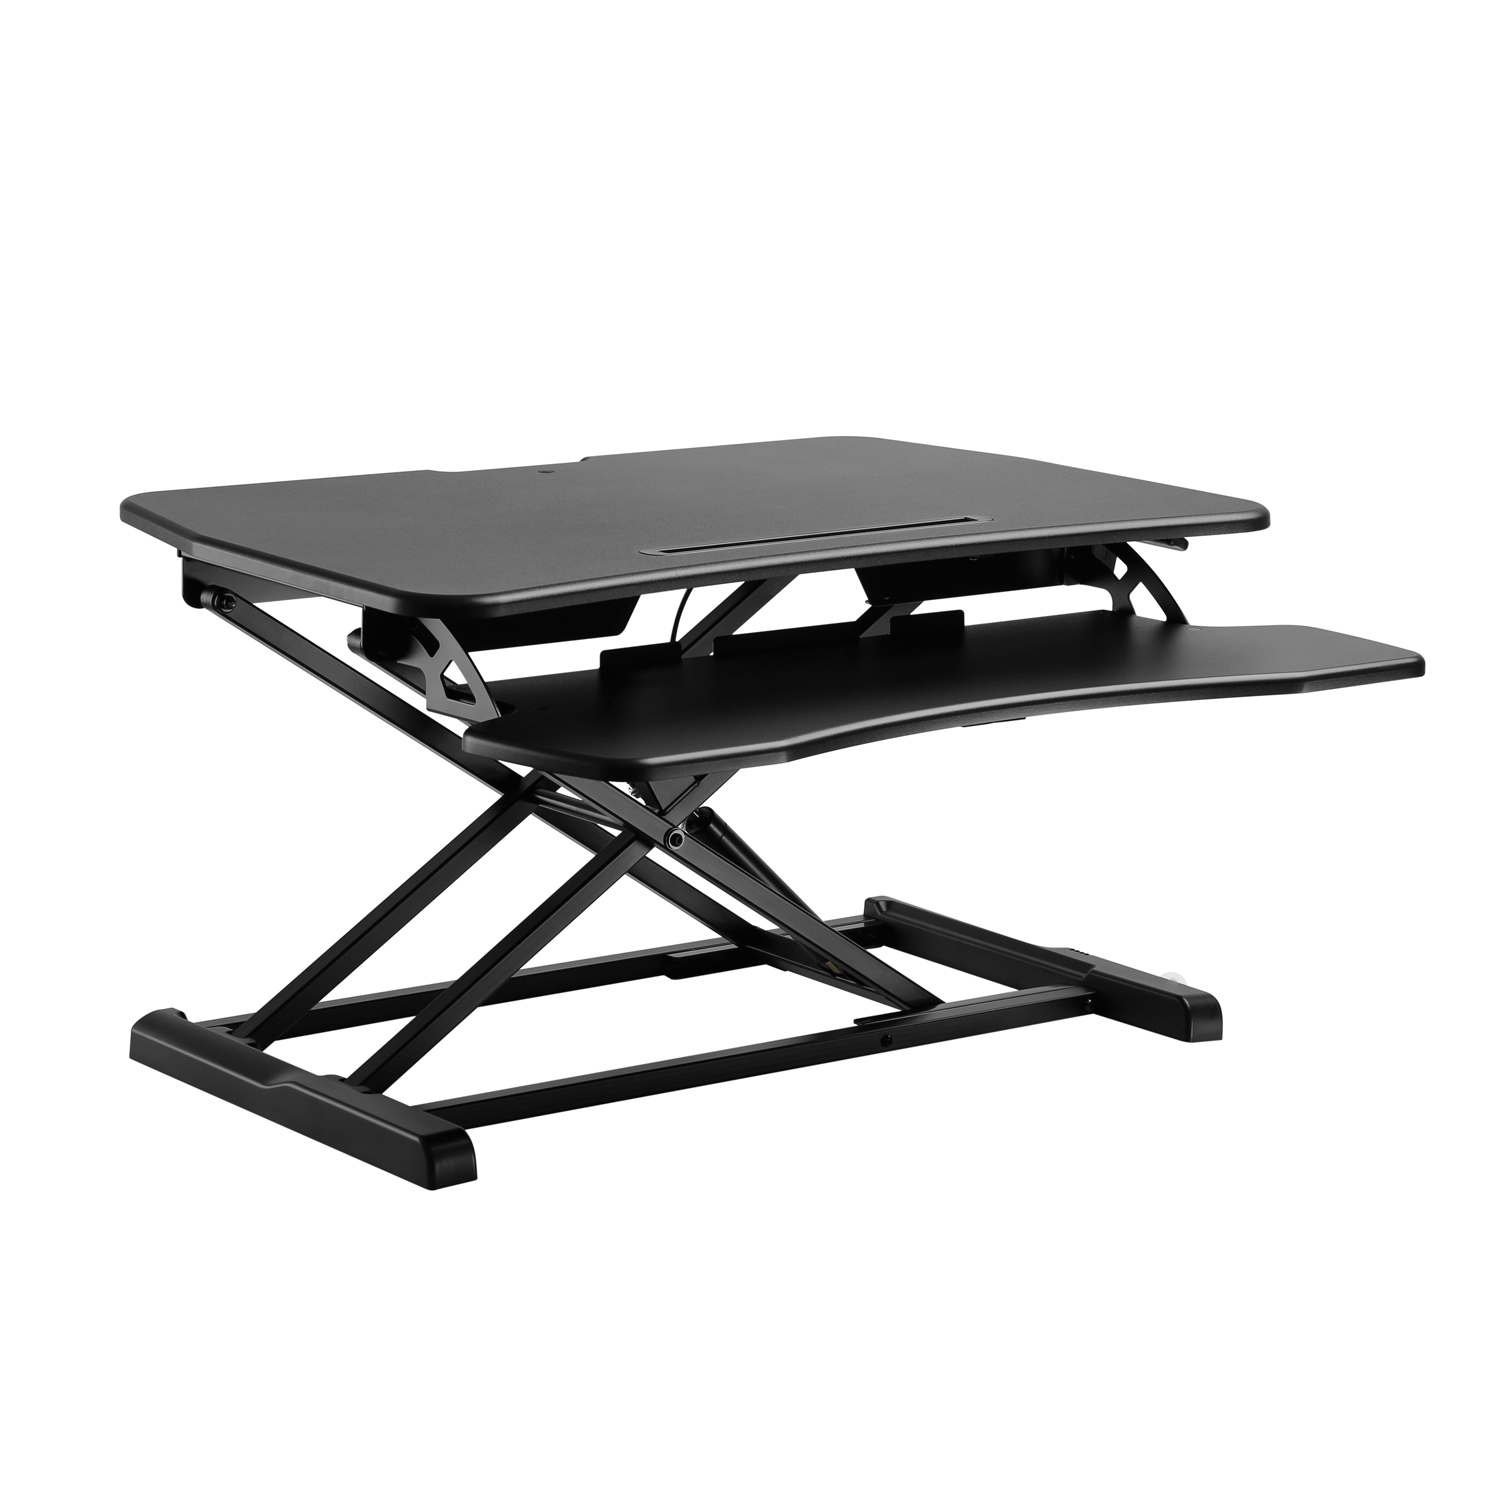 STS-DR32iii Sit to Stand Desk Riser